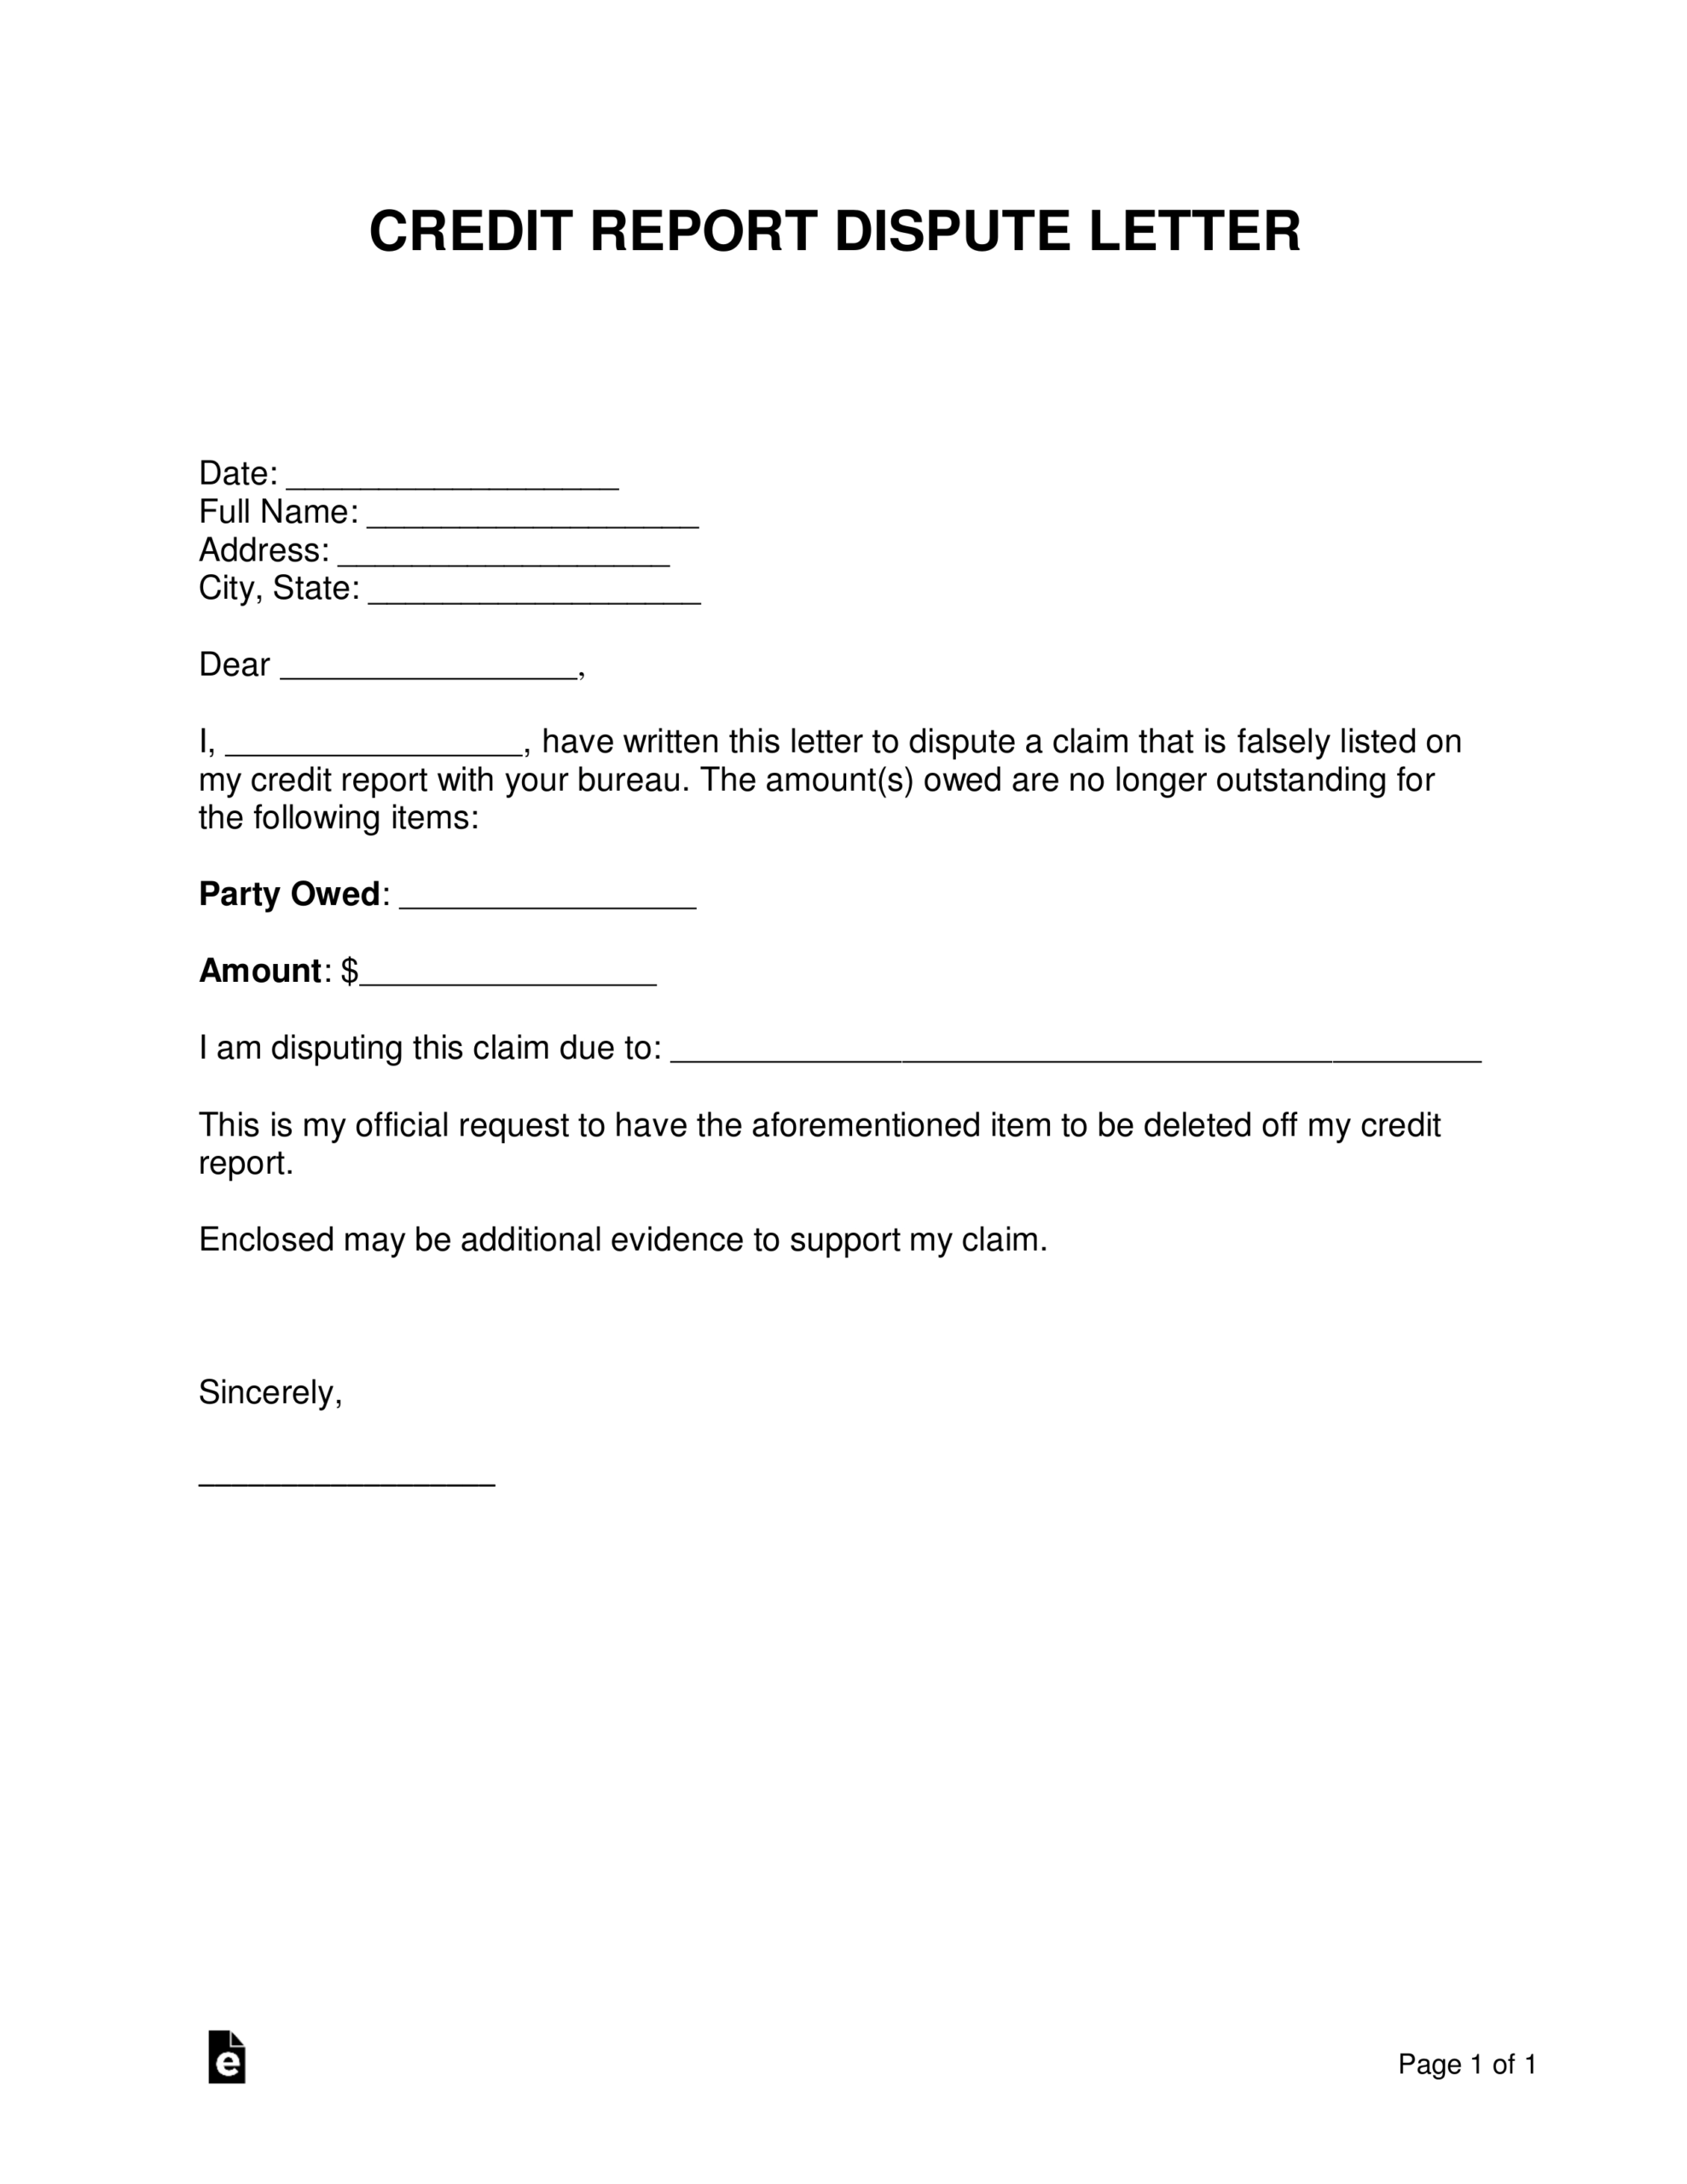 Free Credit Report Dispute Letter Template - Sample - Word For Dispute Letter To Creditor Template